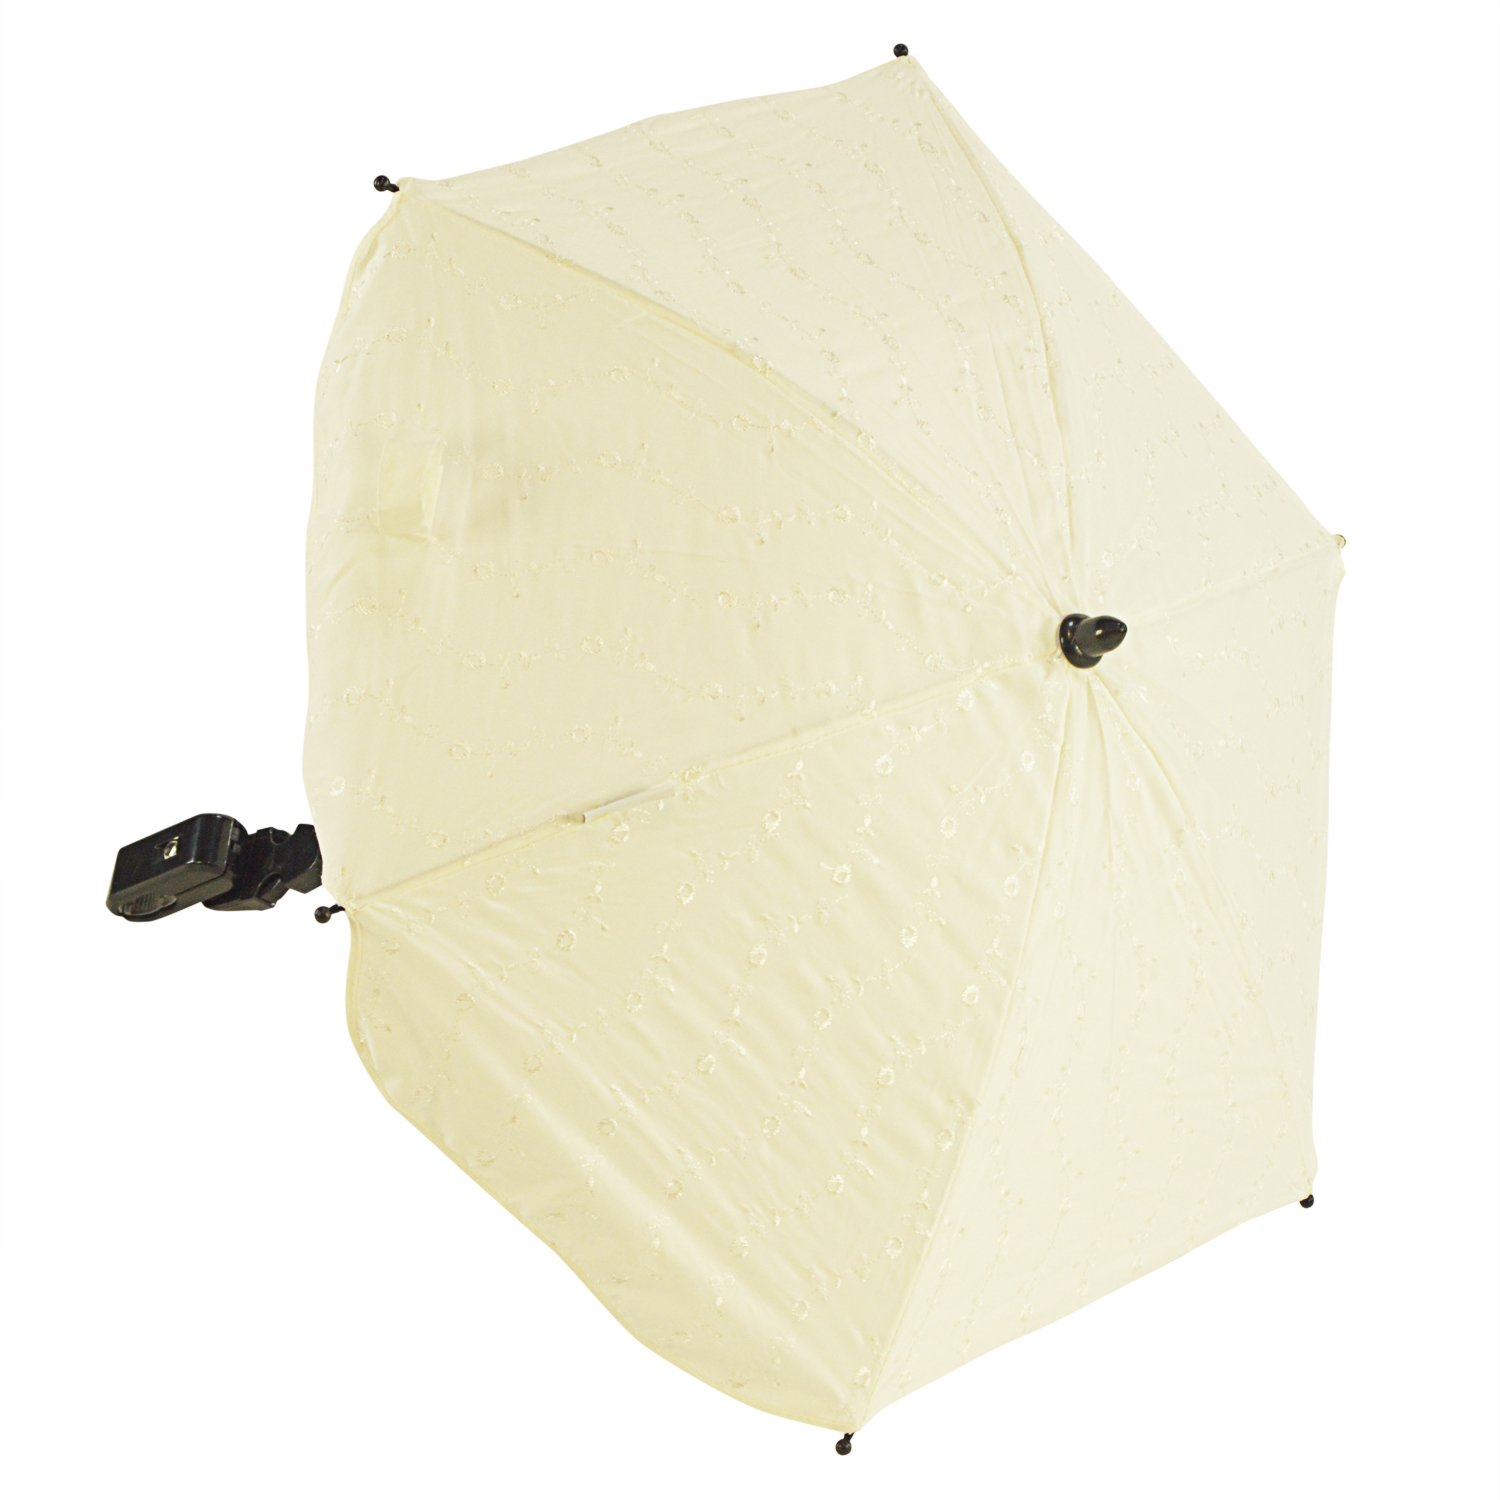 For-Your-Little-One BA Parasol Compatible with My Babiie MB01, Cream For-Your-Little-One Ltd. FYLOCREAM391